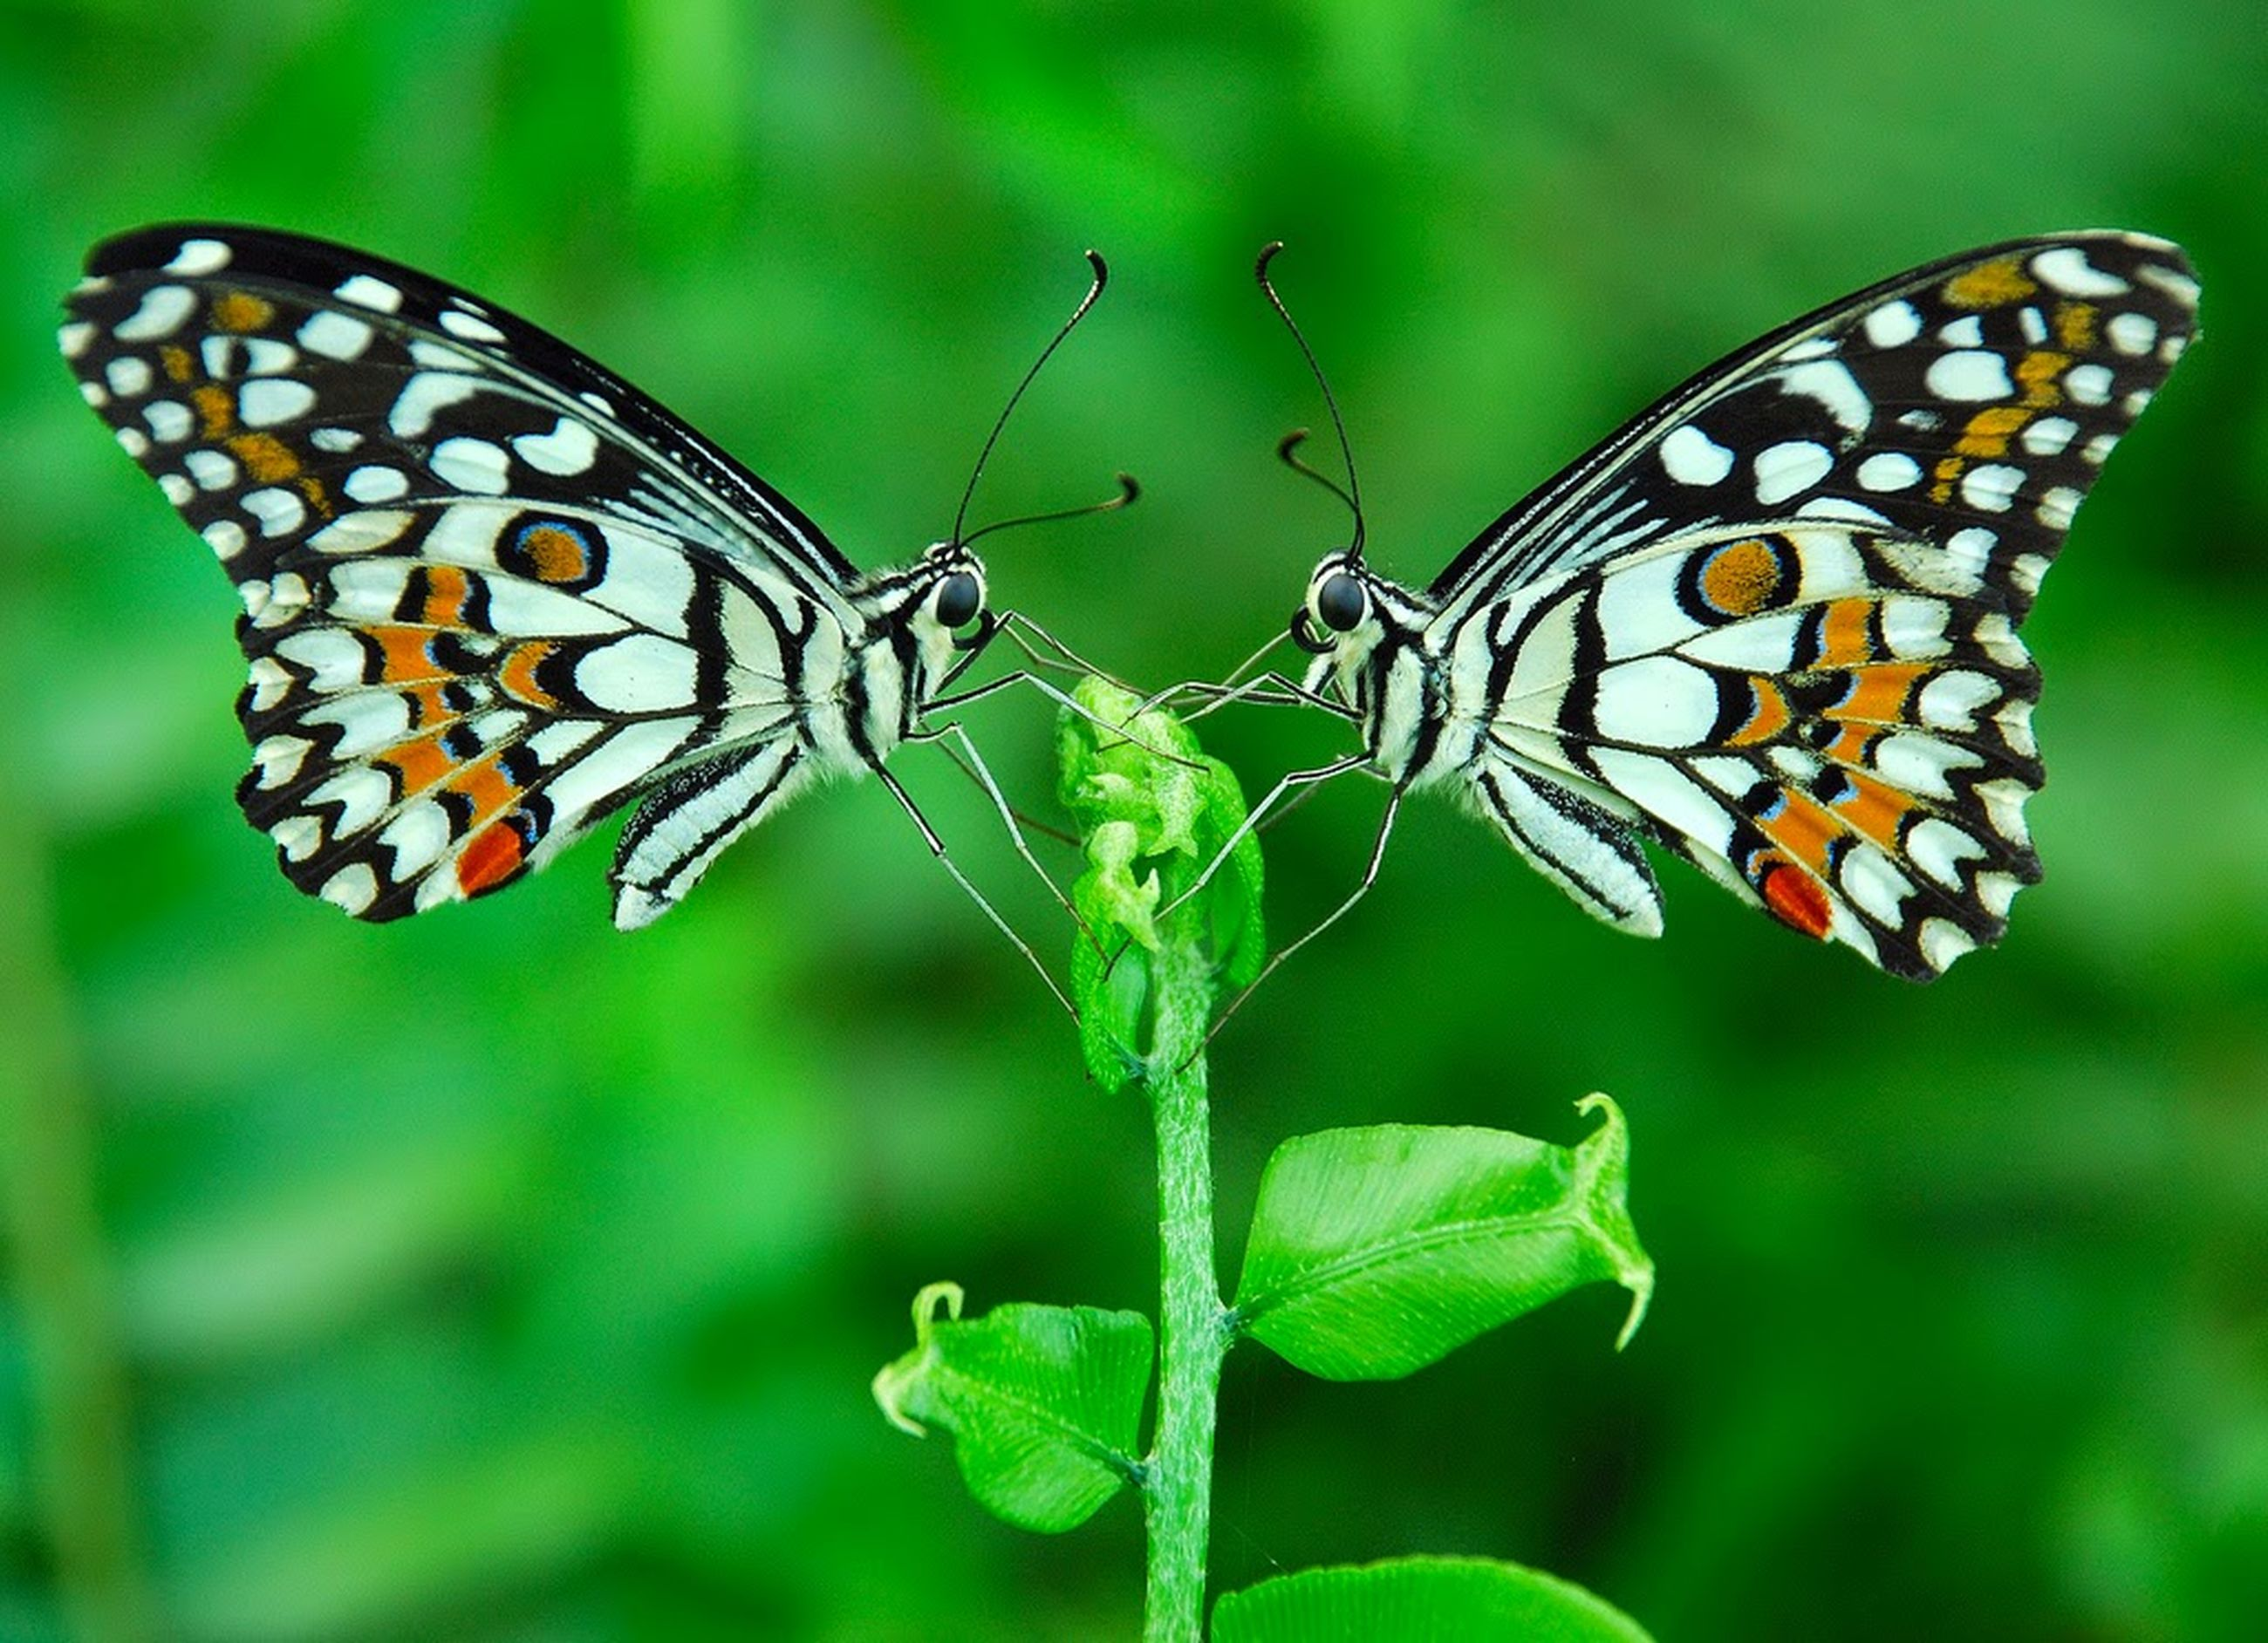 animals in the wild, animal themes, insect, one animal, wildlife, butterfly - insect, animal markings, butterfly, natural pattern, animal wing, close-up, focus on foreground, beauty in nature, leaf, nature, plant, outdoors, day, spread wings, green color